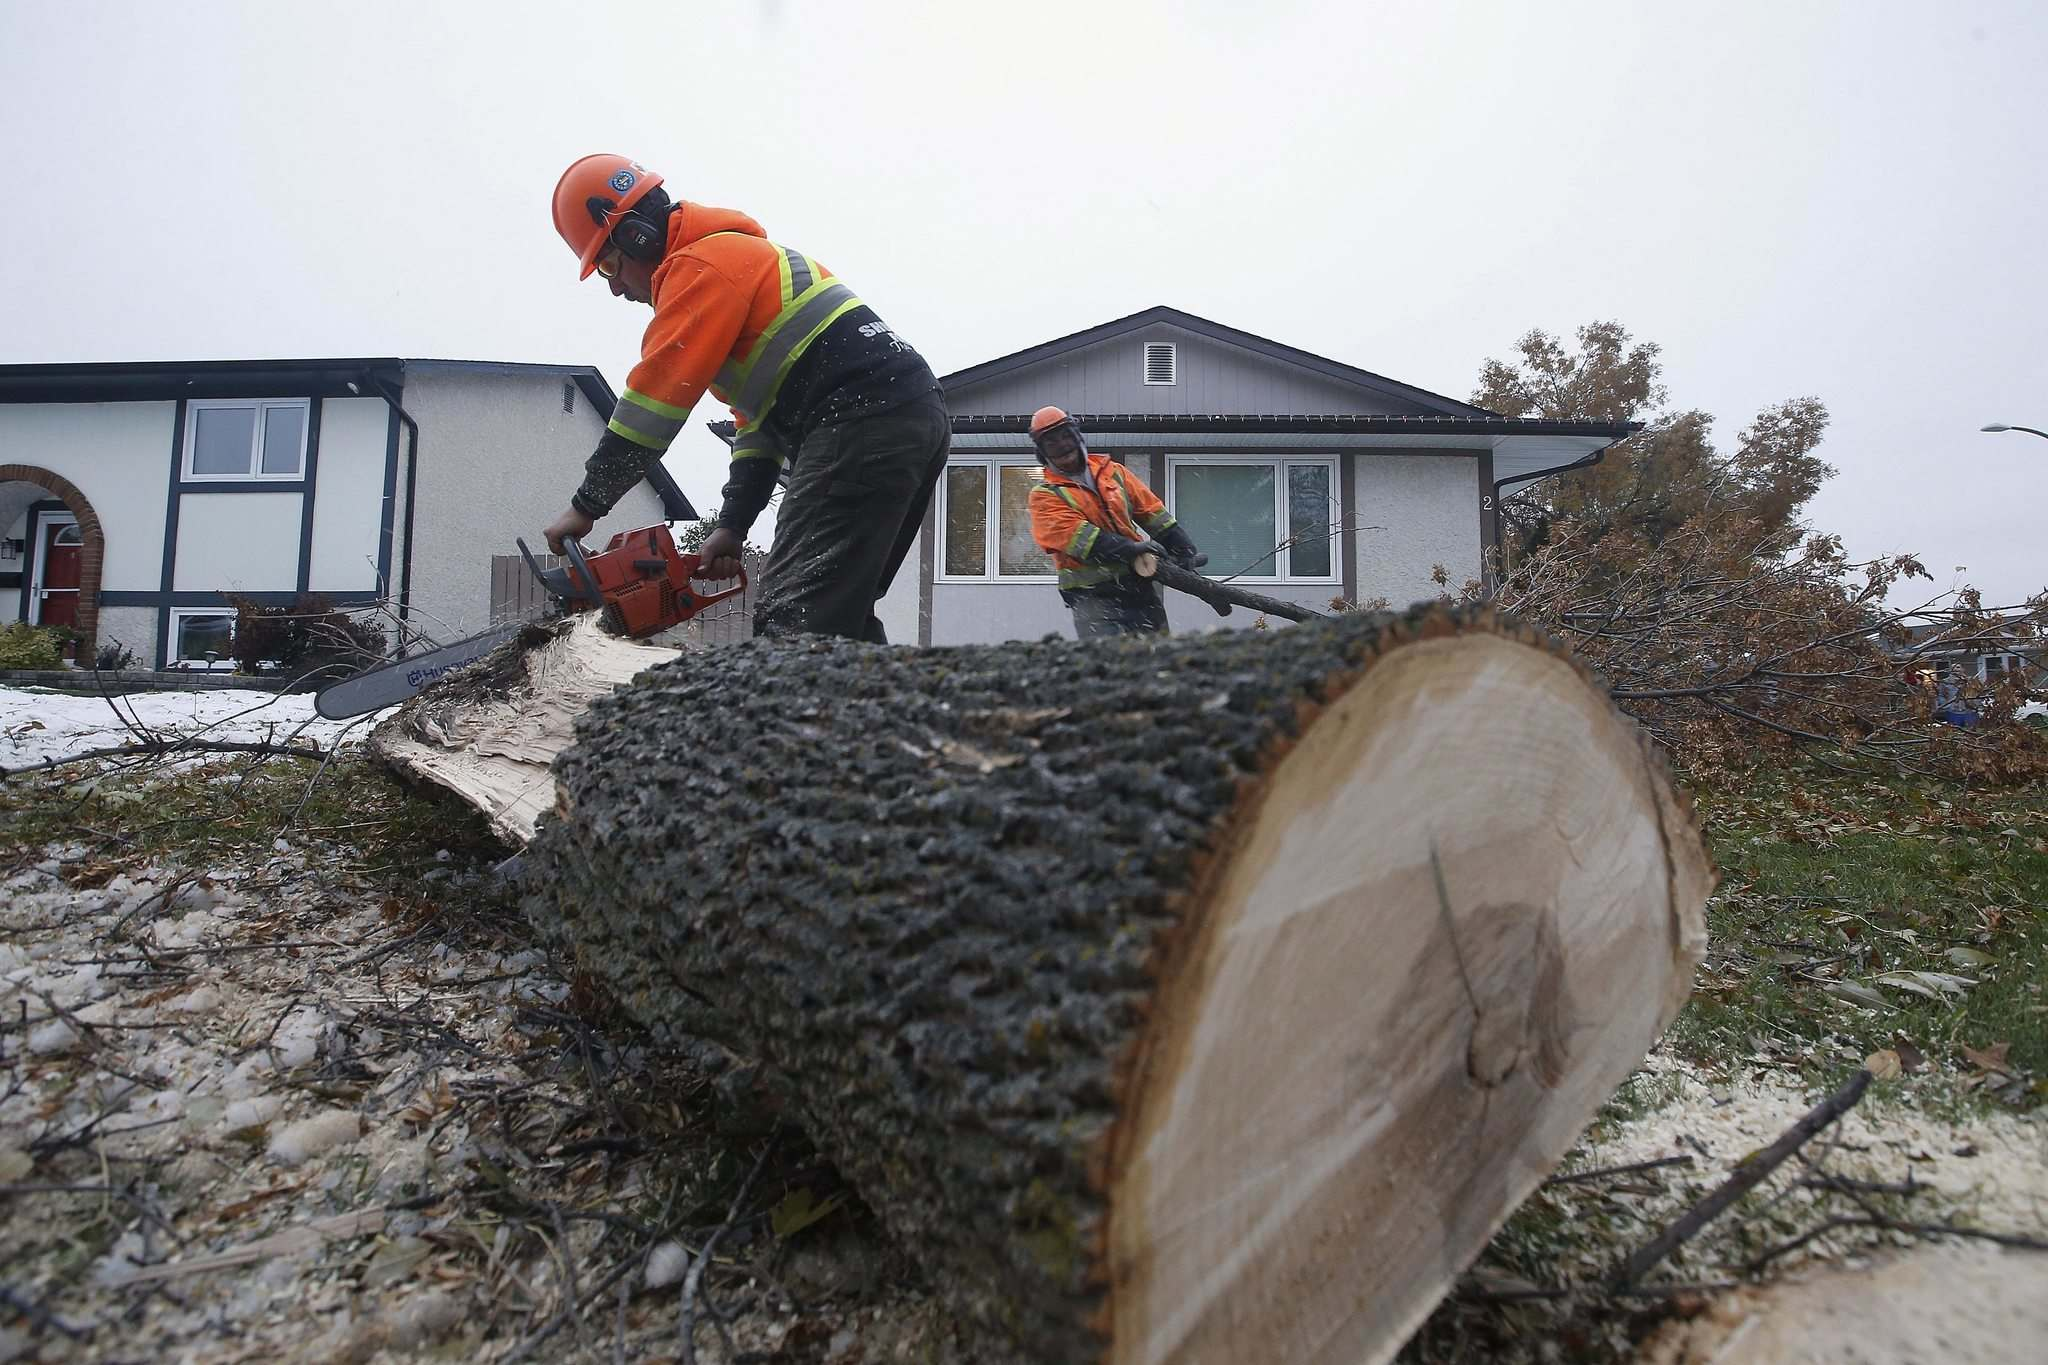 JOHN WOODS / WINNIPEG FREE PRESS</p><p>Shurwood Forest tree service owner Doug Panchuk (left) and his crew removes a damaged tree Tuesday in North Kildonan.</p>